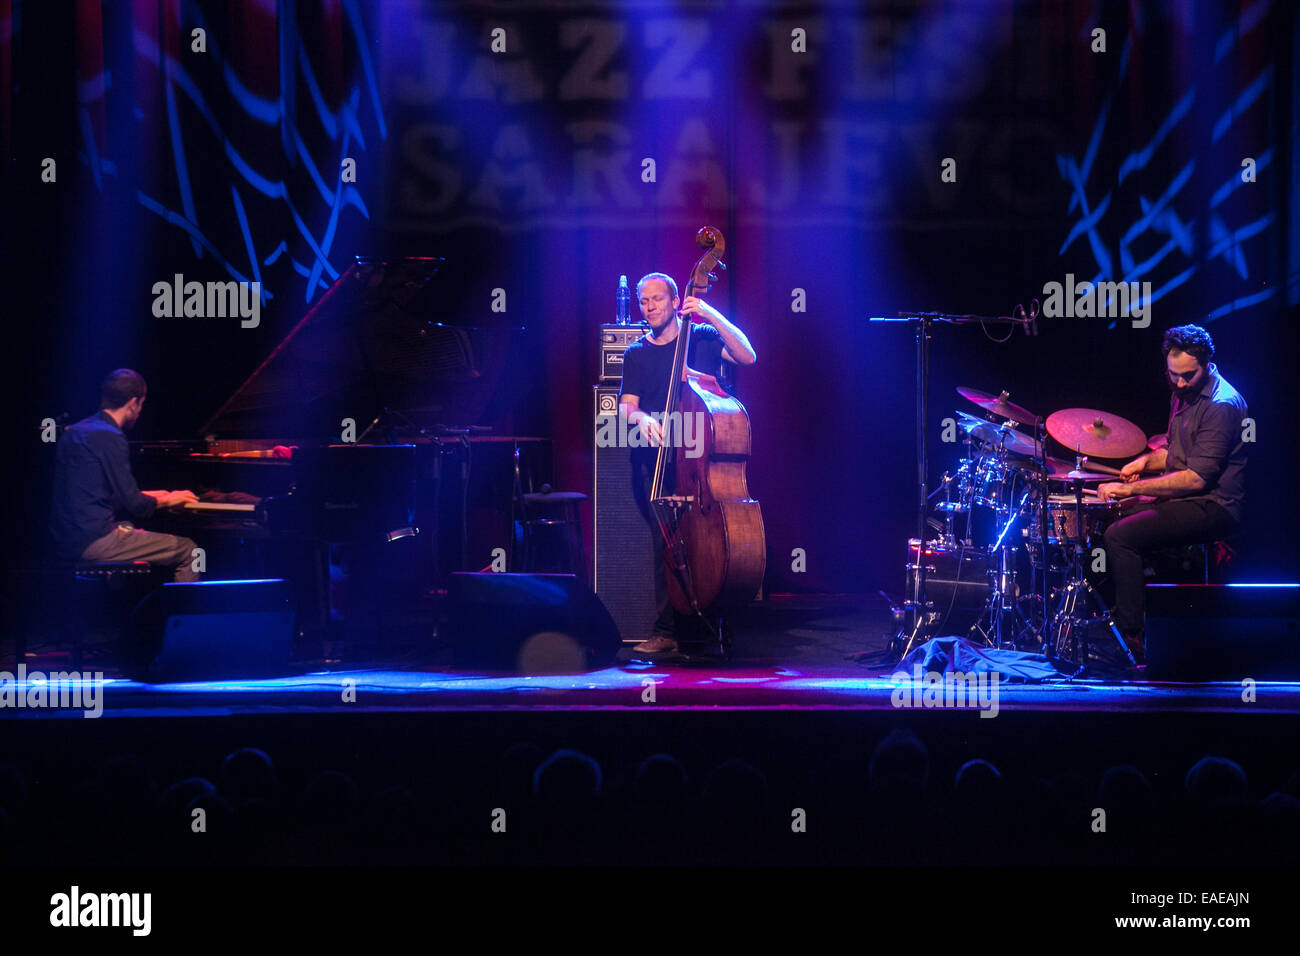 Israeli bassist Avishai Cohen performing with his trio on stage at the 18th Jazz Fest Sarajevo in 2014. - Stock Image